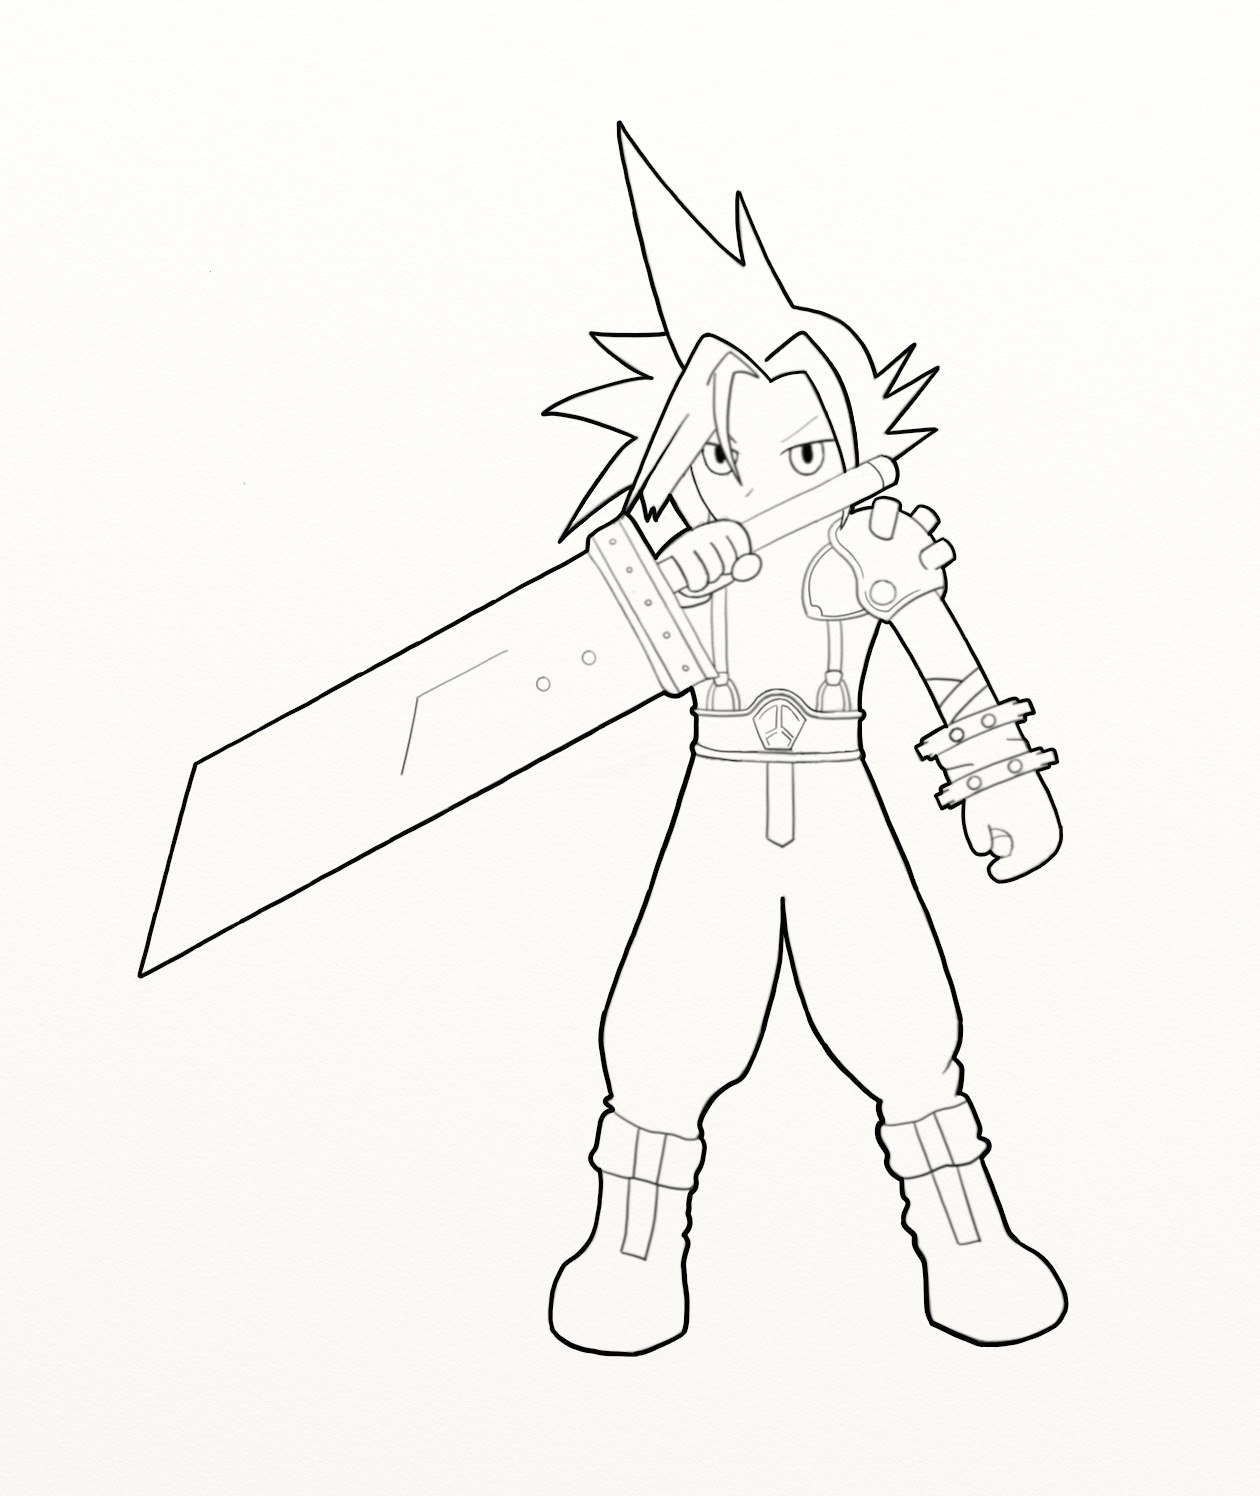 Final Fantasy Coloring Pages ordering Download Of Sephiroth Line by Skylewolf 900—1273 Collection